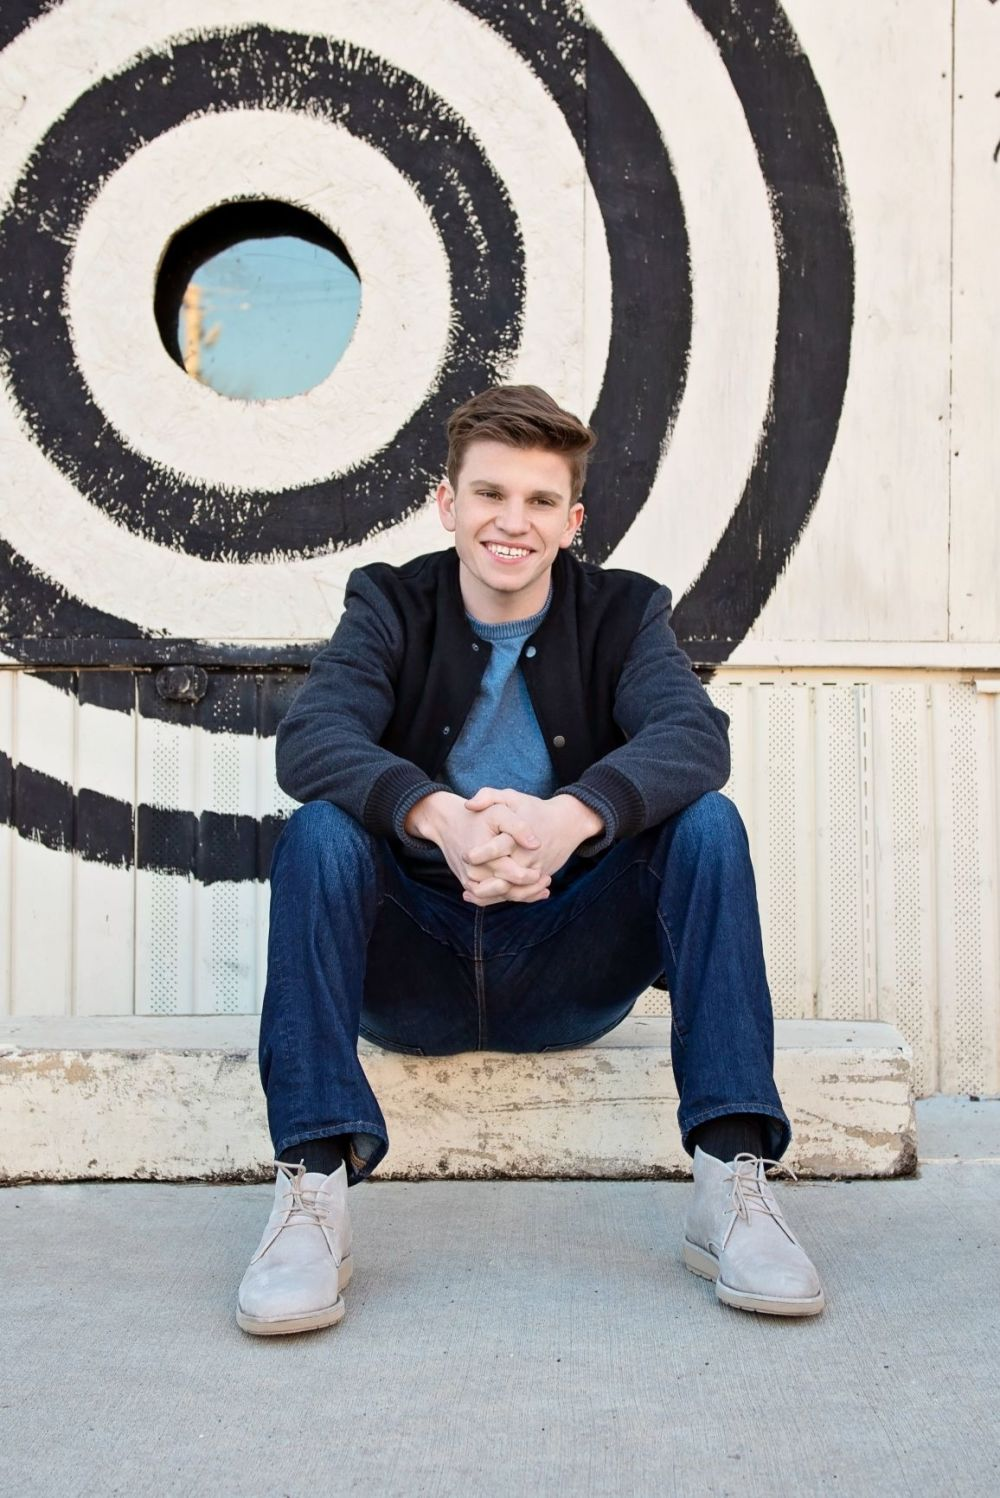 High School Senior Portrait Photography for guys in Camp Hill PA